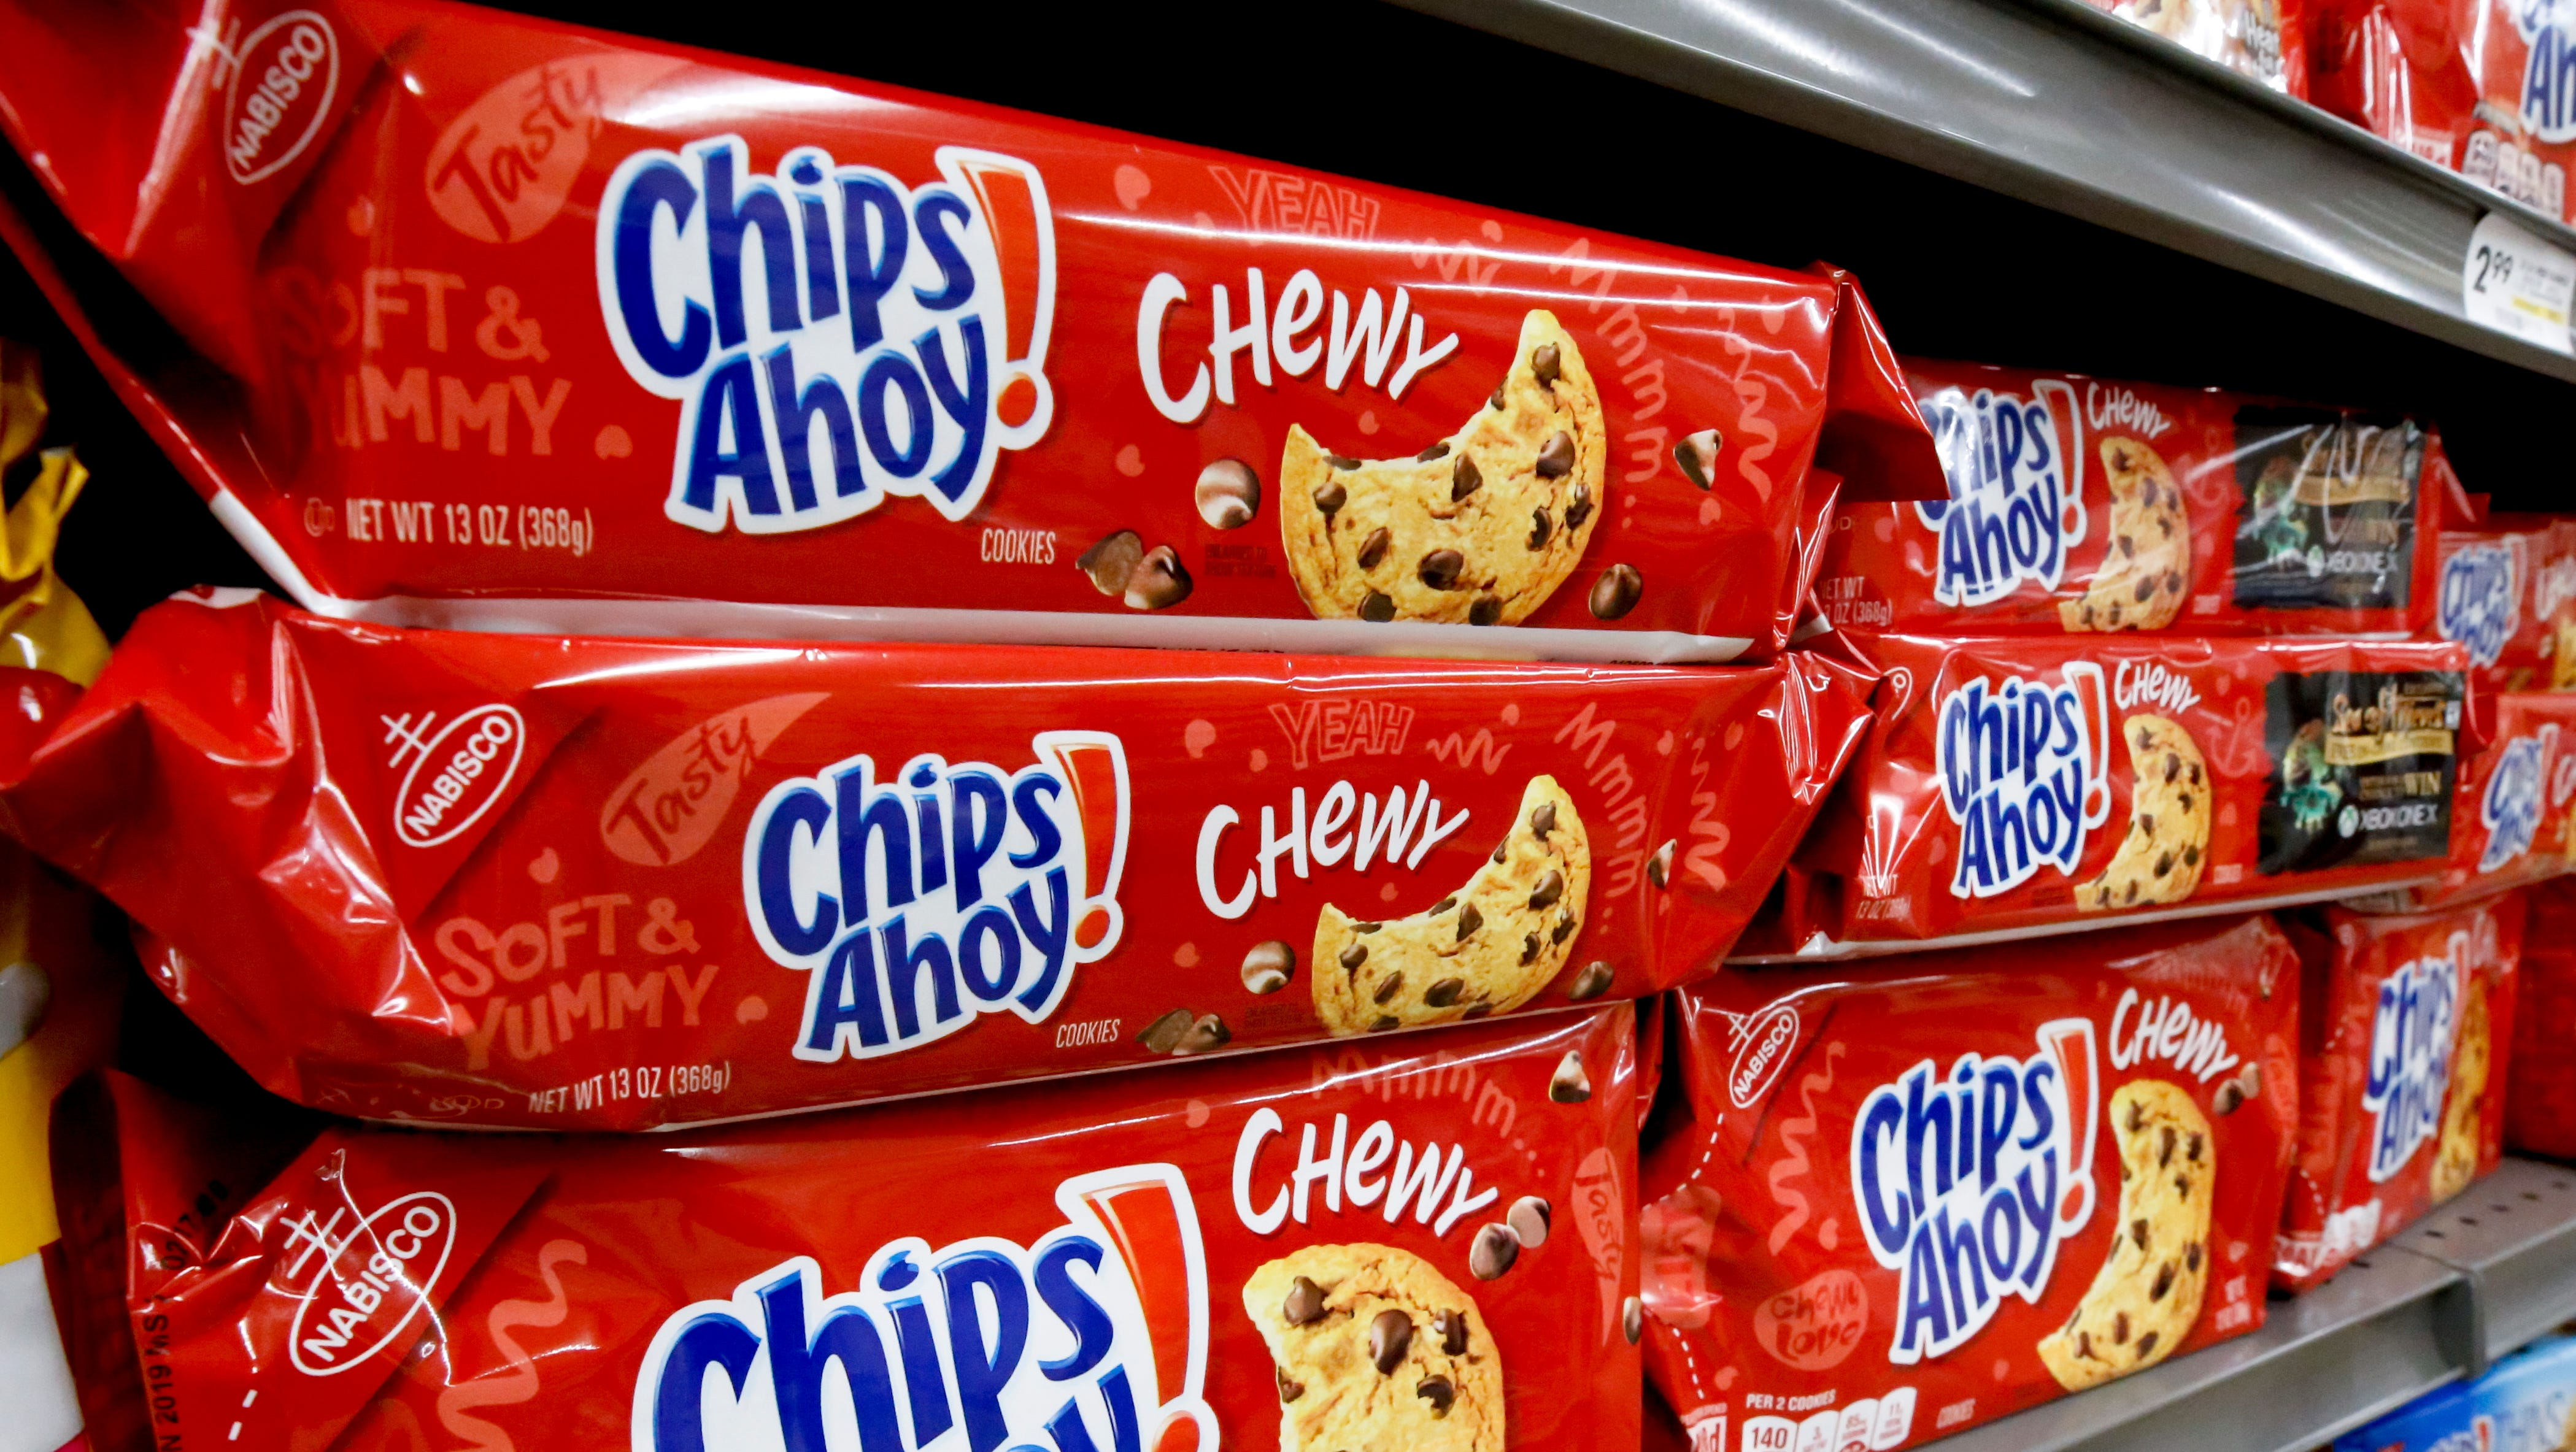 Chewy Chips Ahoy! chocolate chip cookies recalled